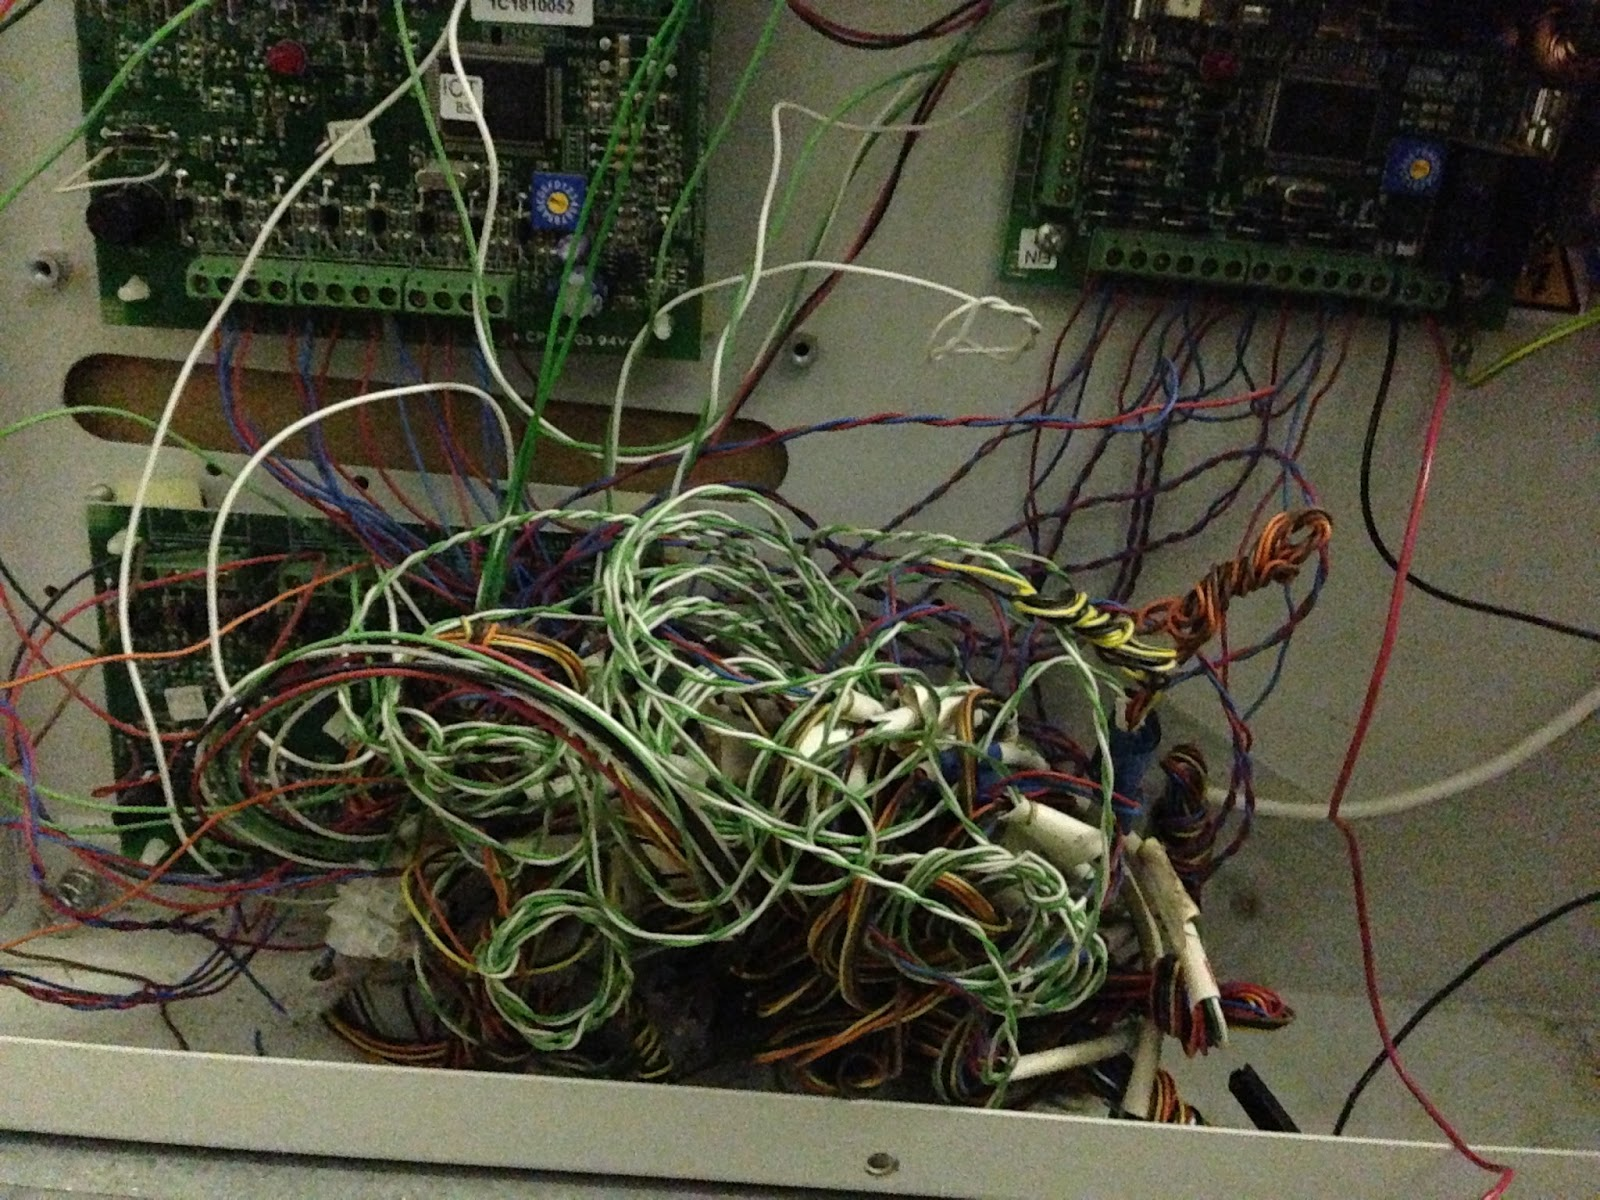 wiring why they quote you cheaper rh dsshir com control panel wiring standards Electrical Control Panels